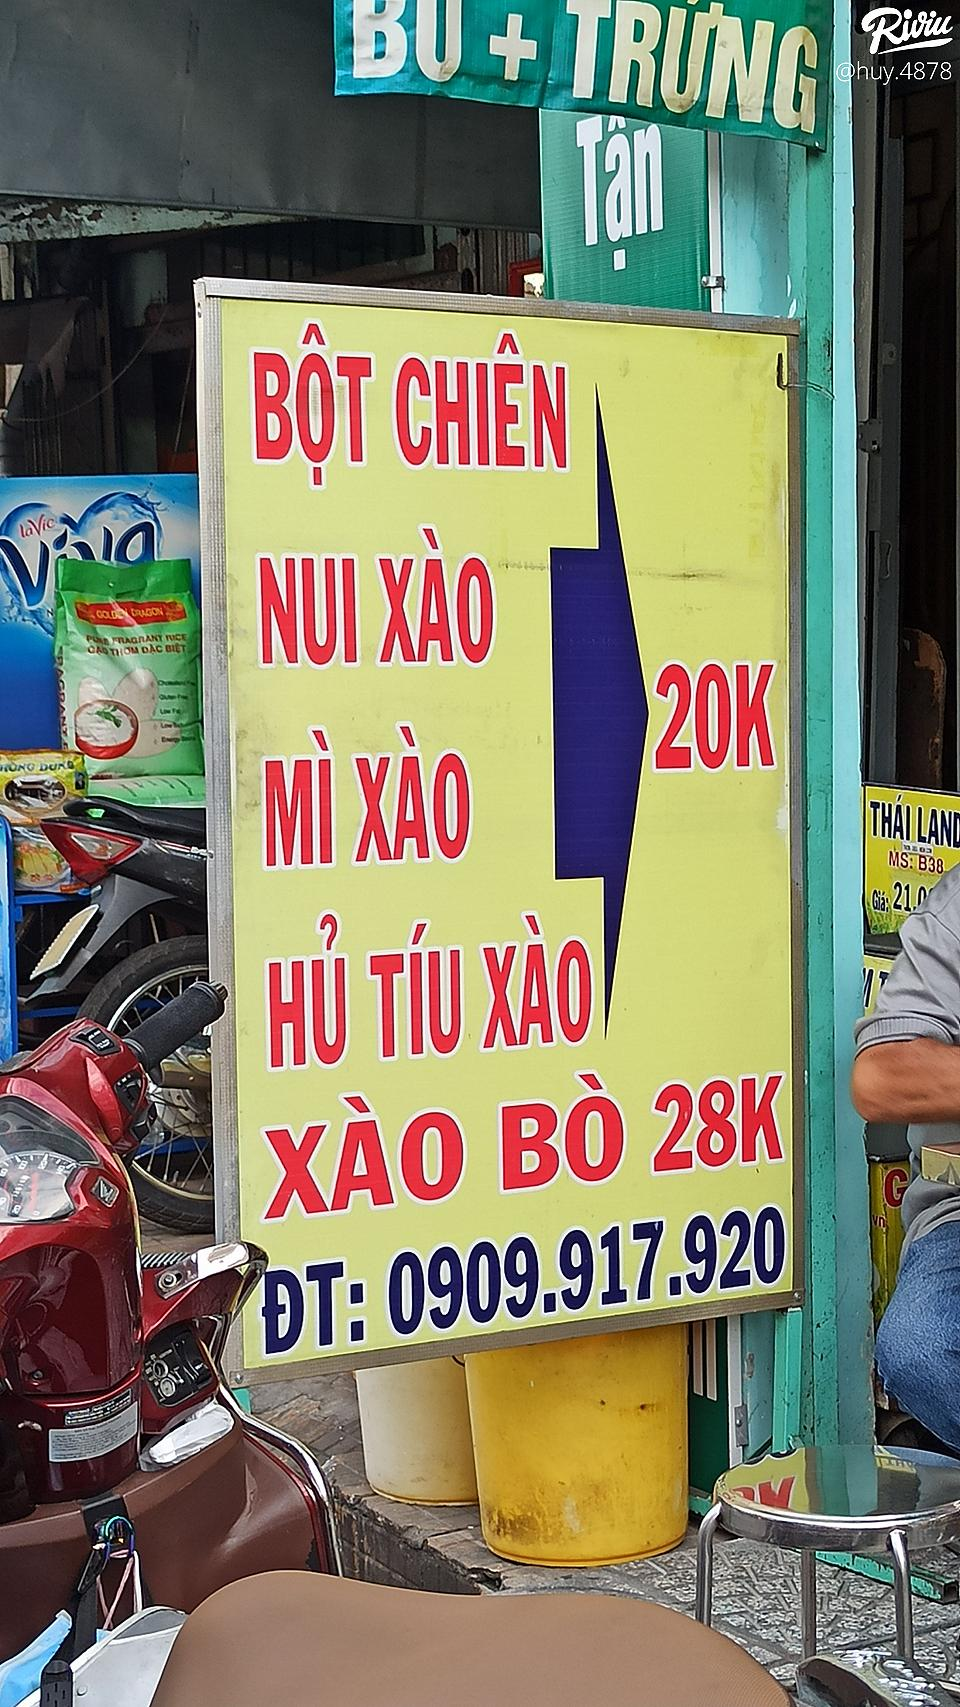 "quan "" bot chien 103 ""  - anh 4"